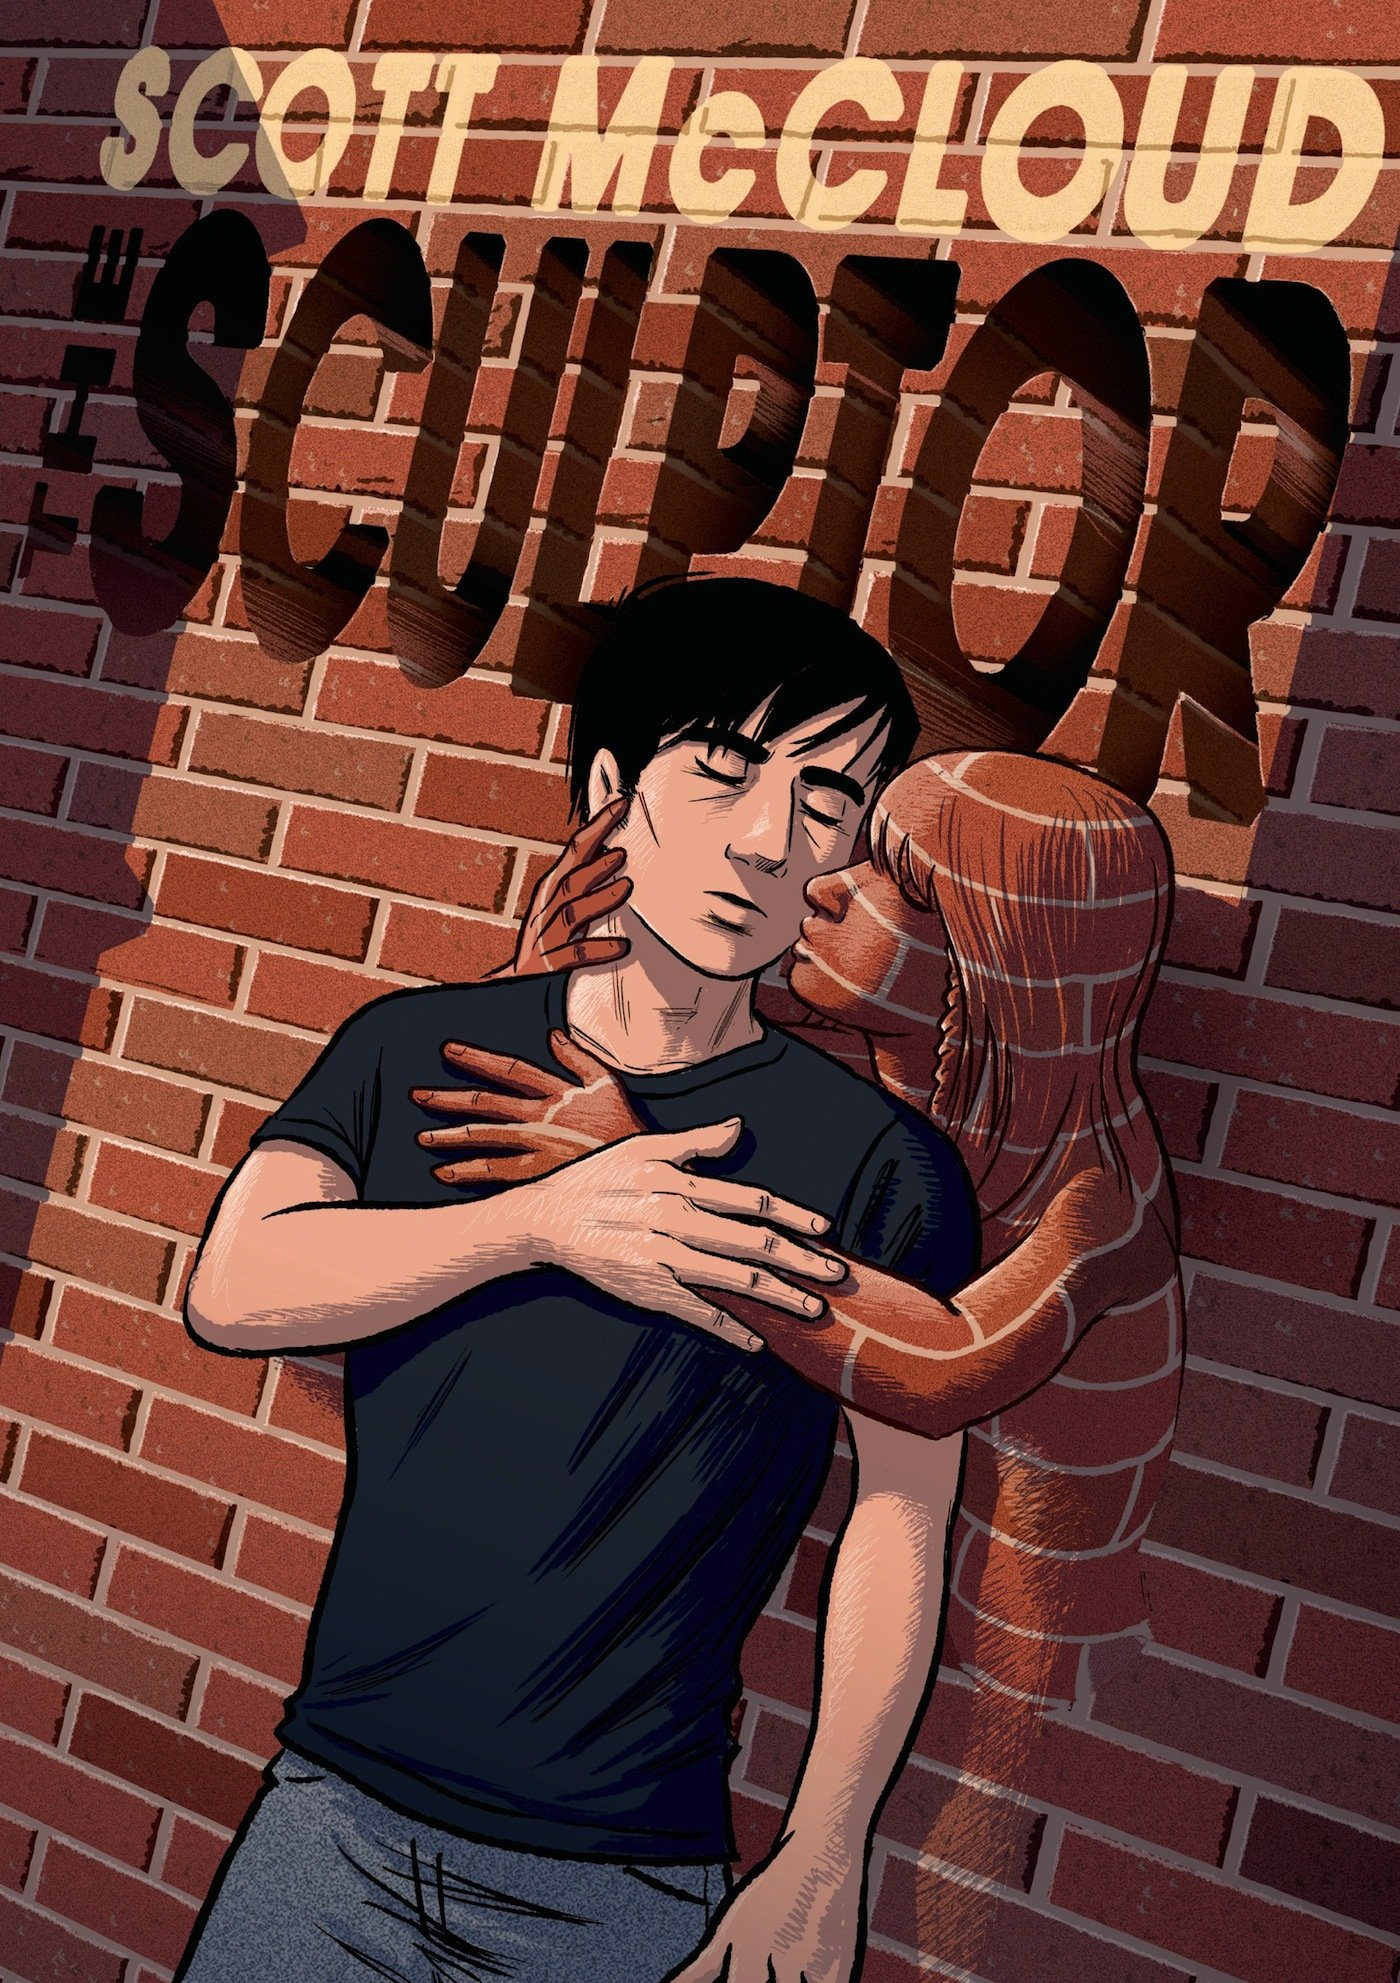 The Sculptor, graphic novel by Scott McCloud